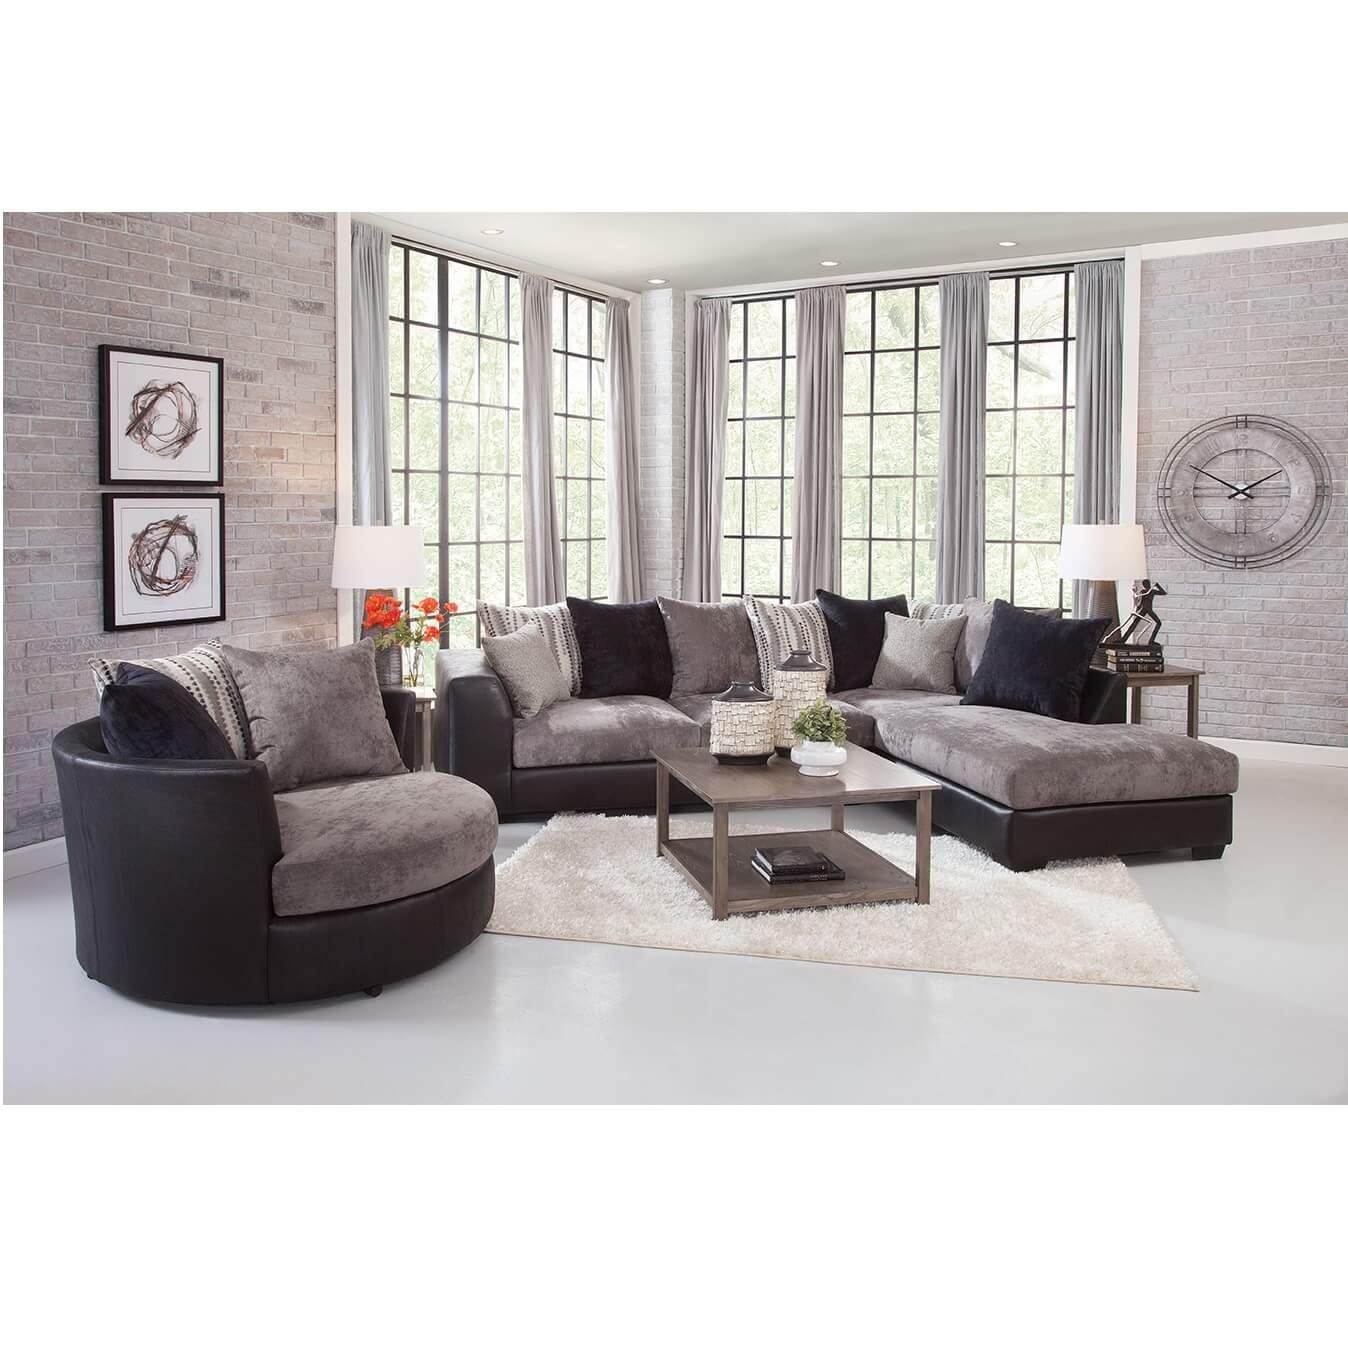 3 piece jamal chaise sofa sectional with barrel chair